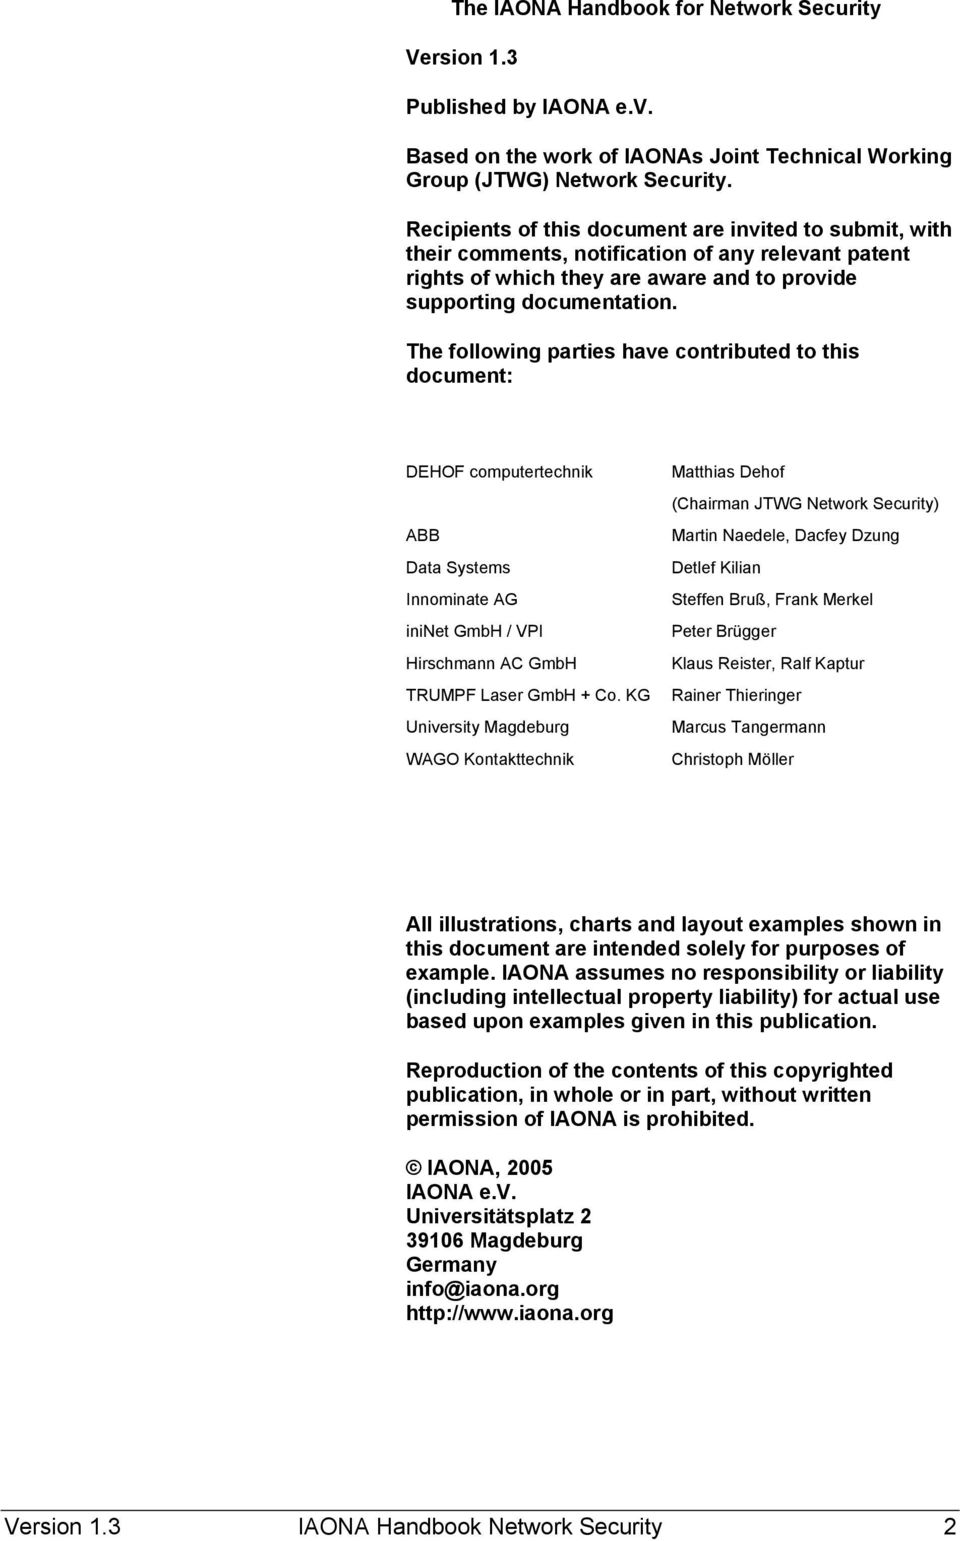 The following parties have contributed to this document: DEHOF computertechnik ABB Data Systems Innominate AG ininet GmbH / VPI Hirschmann AC GmbH TRUMPF Laser GmbH + Co.